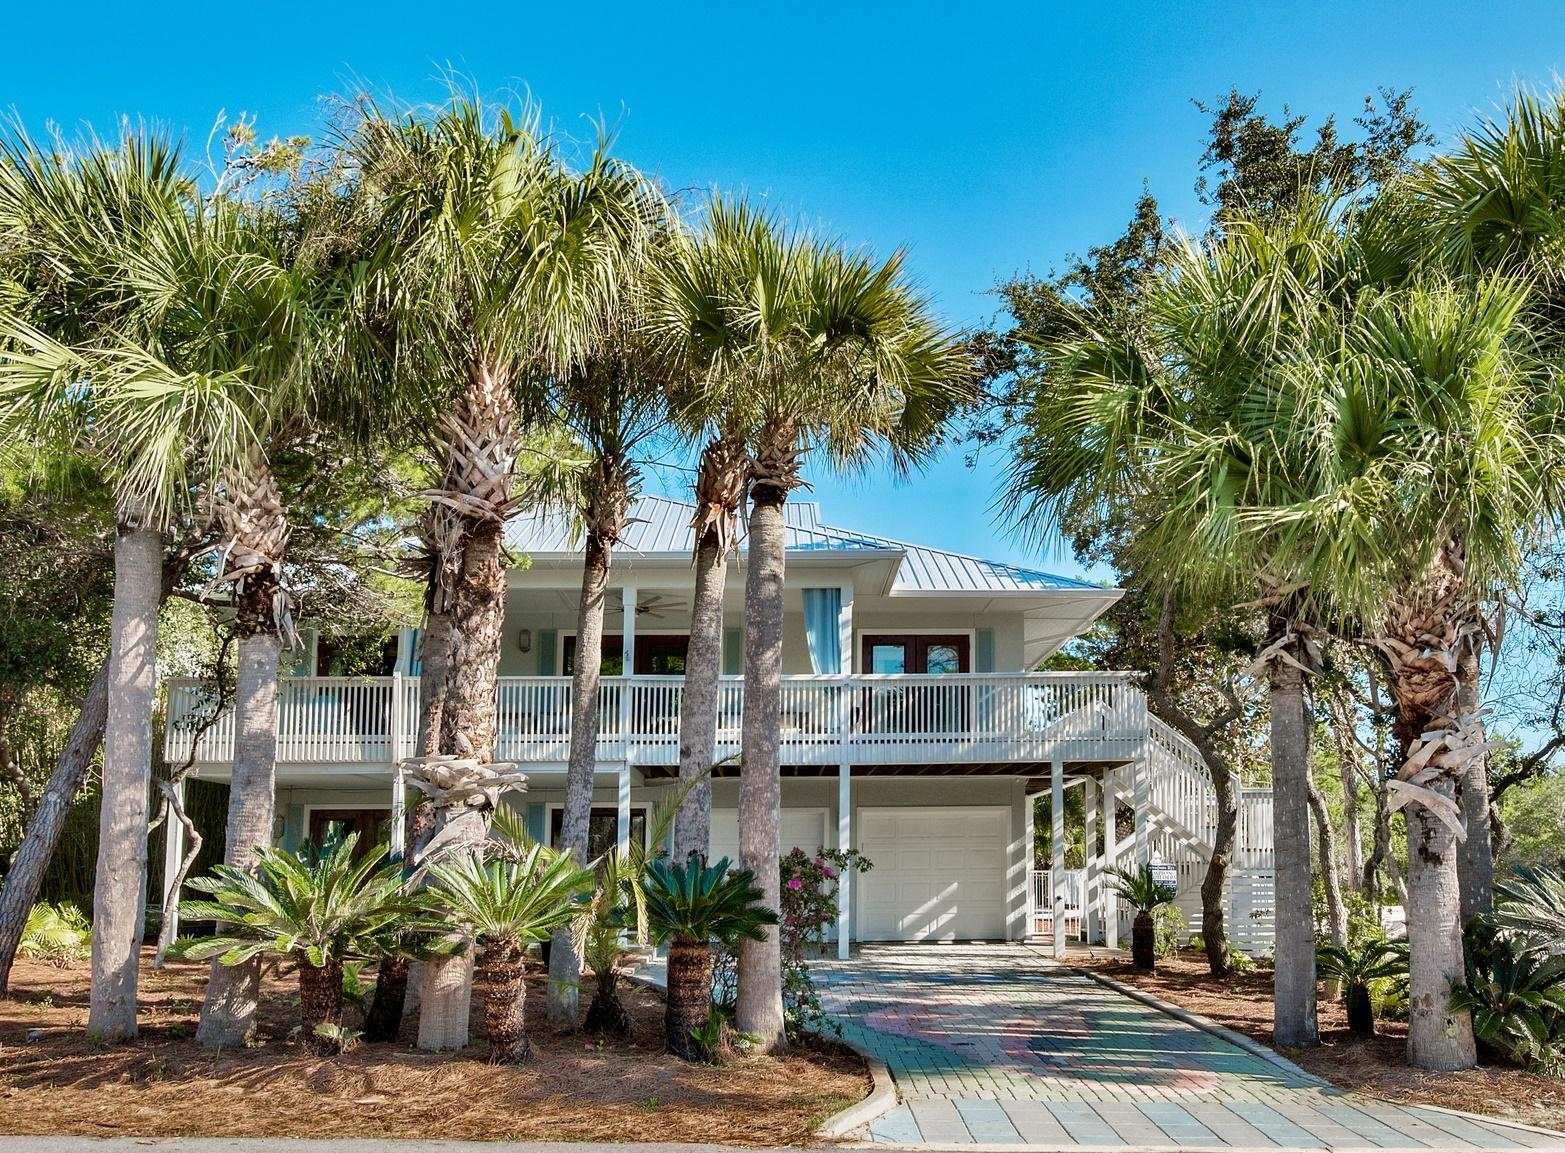 A 5 Bedroom 4 Bedroom Gulf Trace Home